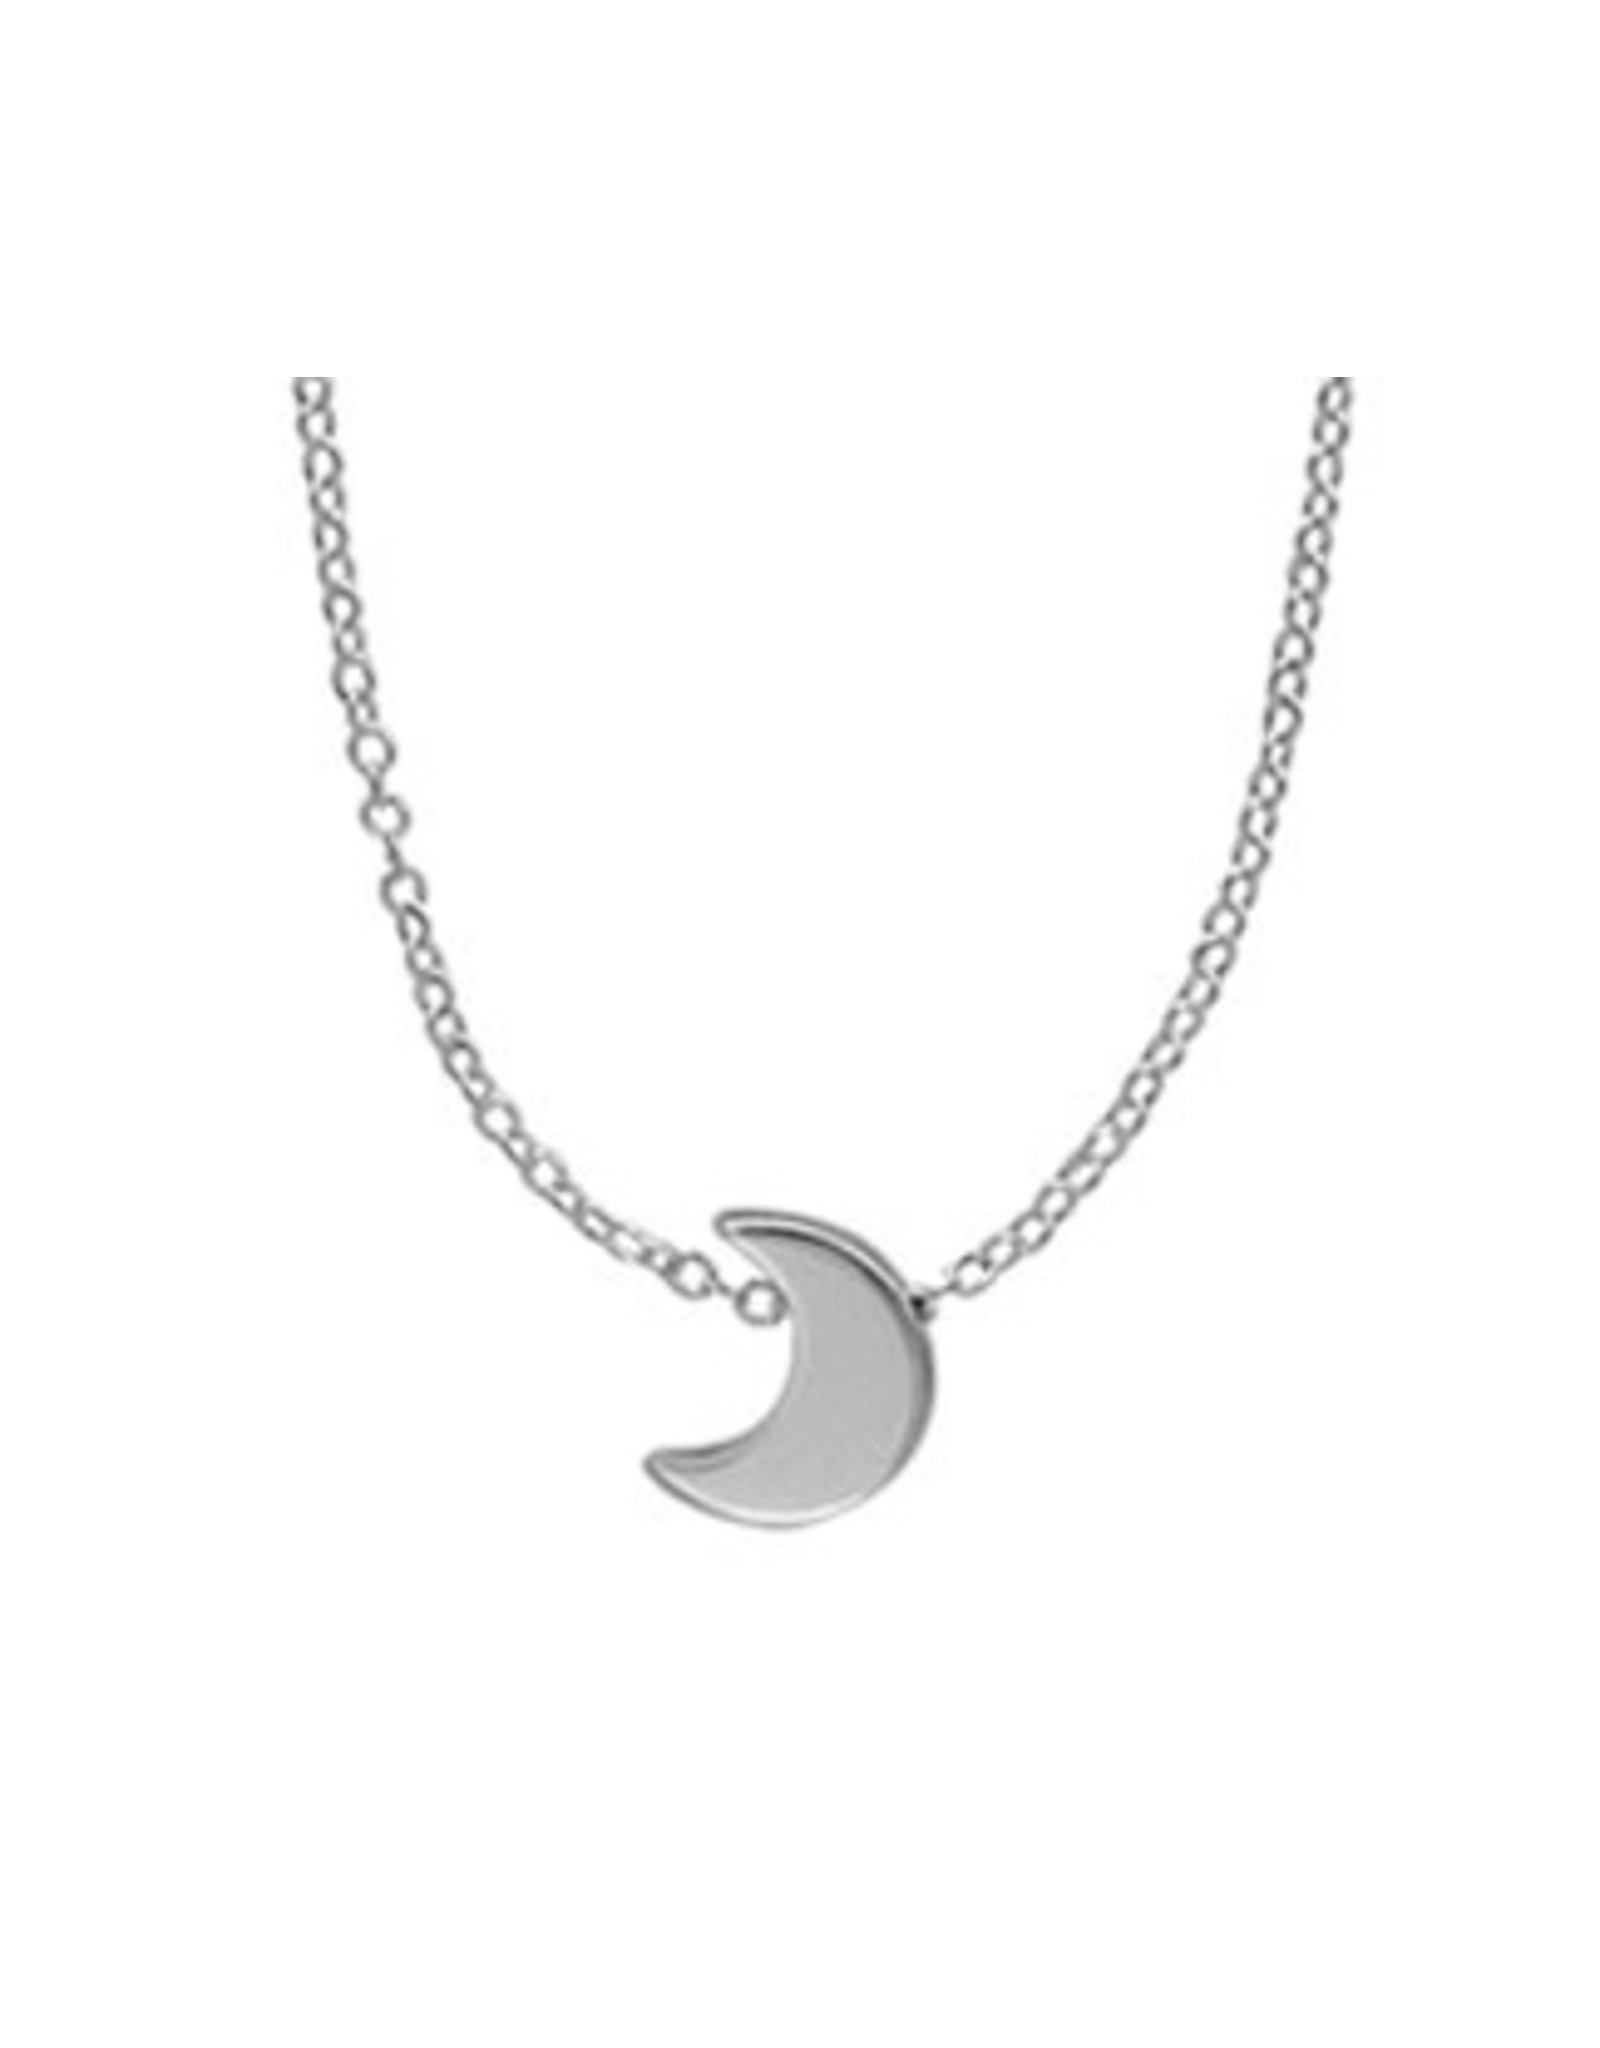 "Boma CRESCENT MOON NECKLACE 18"" SILVER"